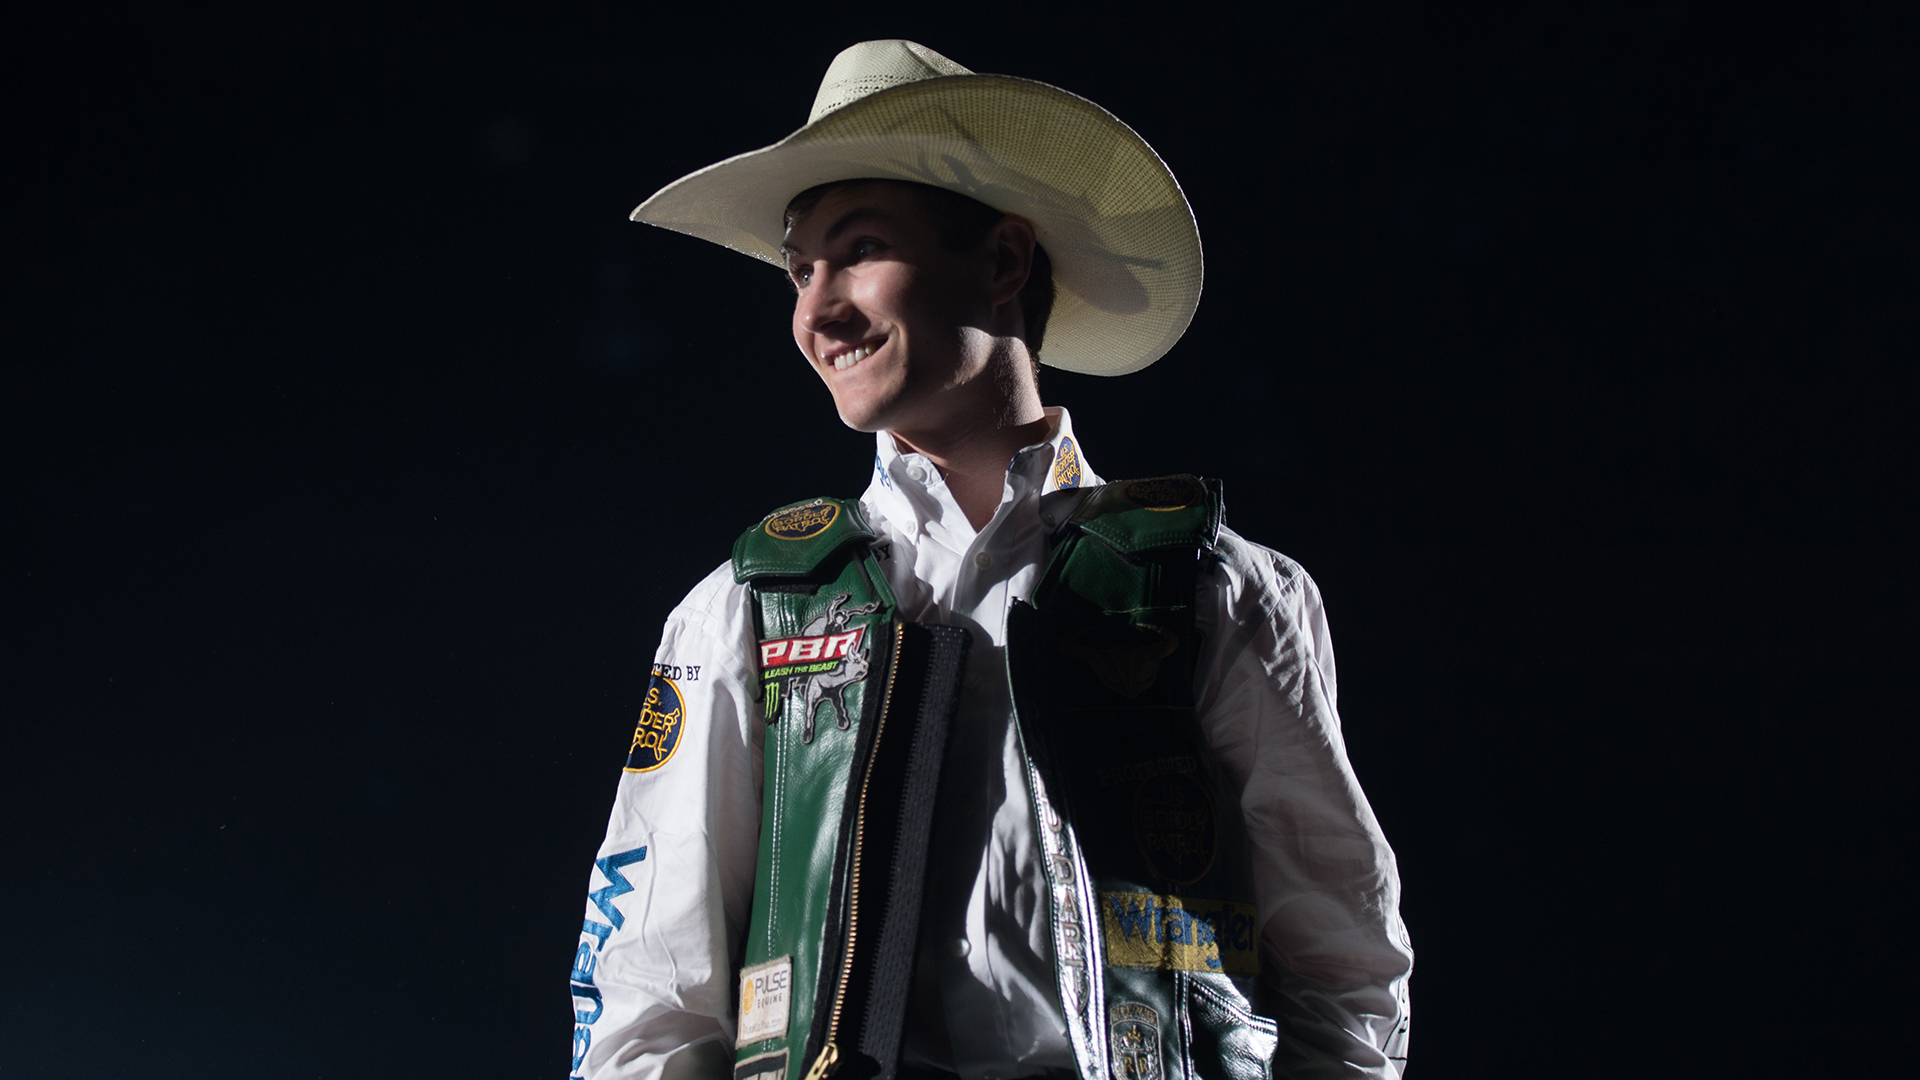 Lockwood's Binford win moves him to No. 2 in the world with Last Cowboy Standing one month away